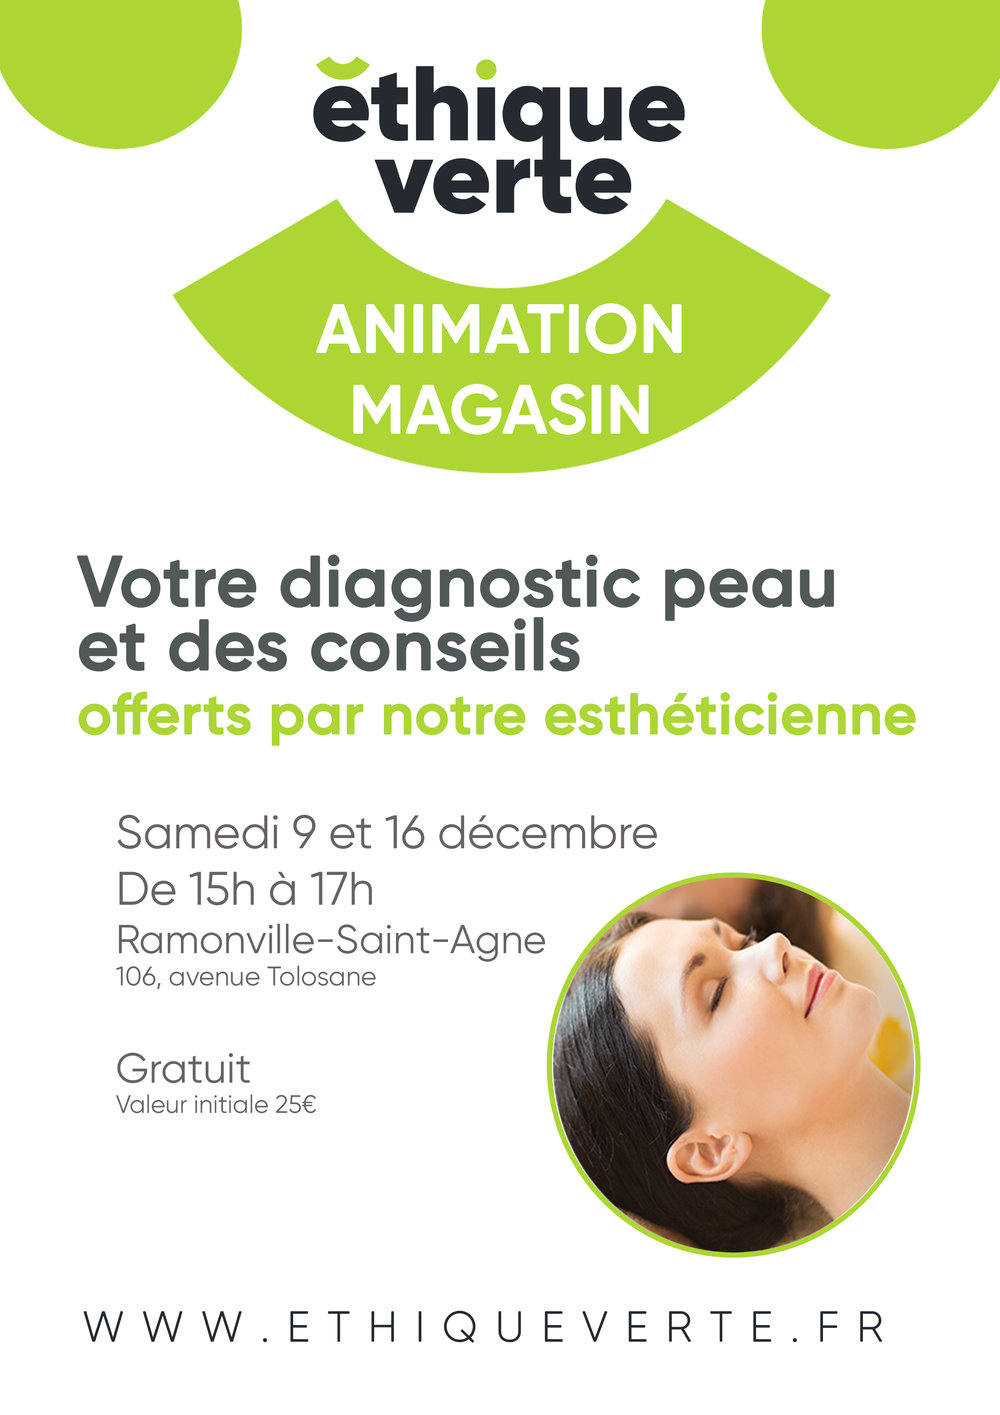 animation-diagnostic-peau-ethique-verte.jpg